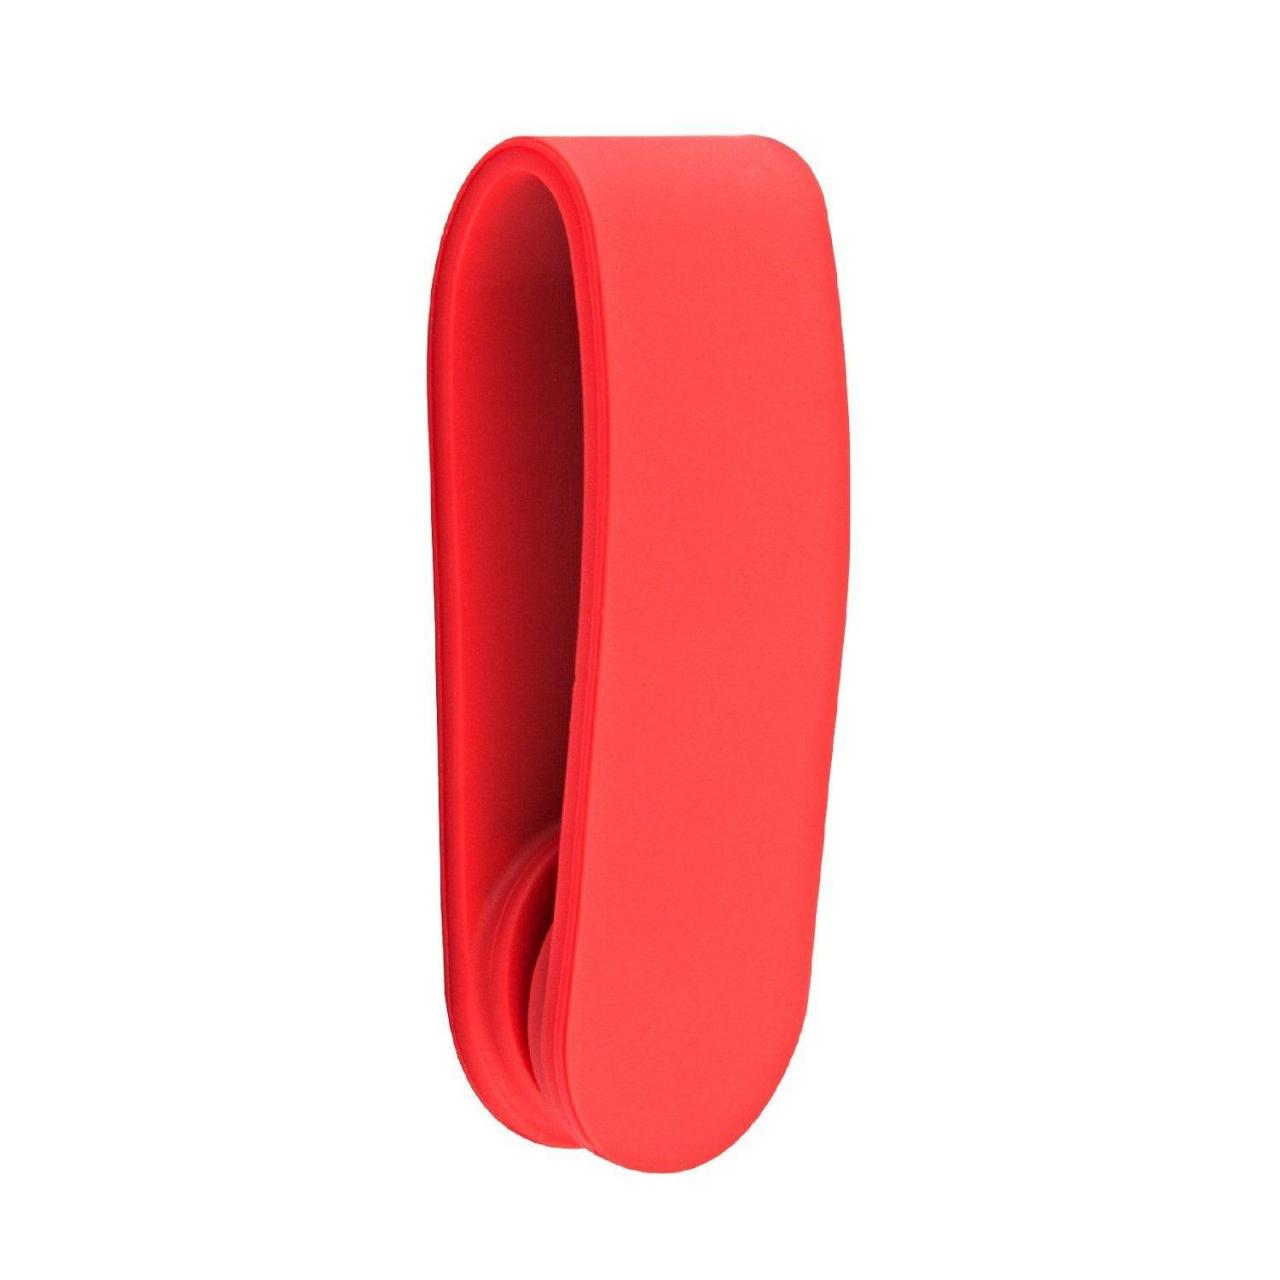 Buy cheap Magnetic Silicone Band Durable Reusable Cable Tie / Smartphone Stand / Earbud Holder / Money Clip - from wholesalers